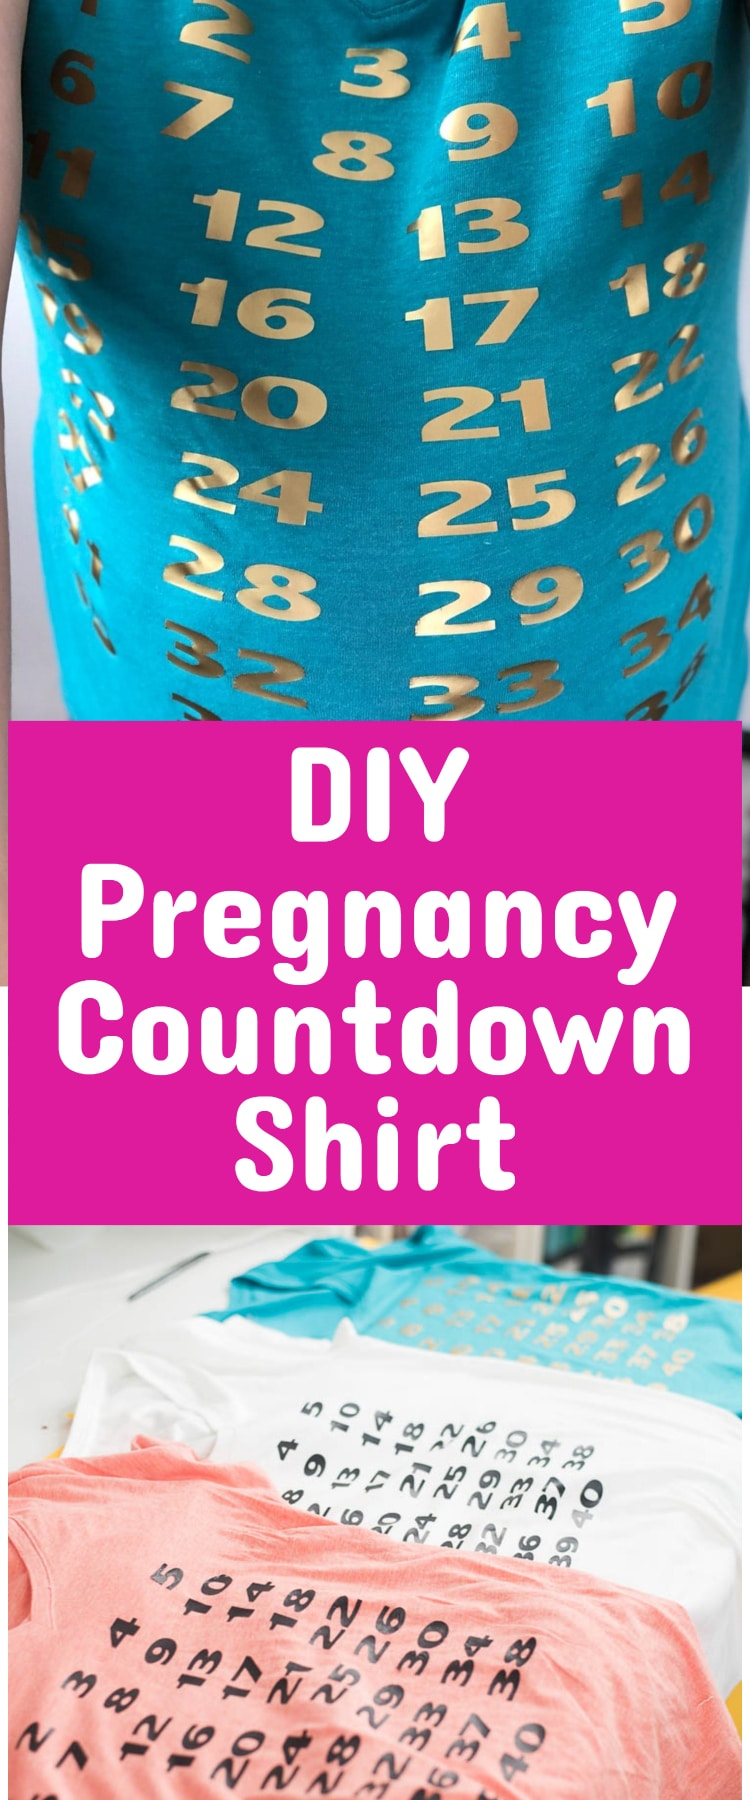 DIY Pregnancy Countdown